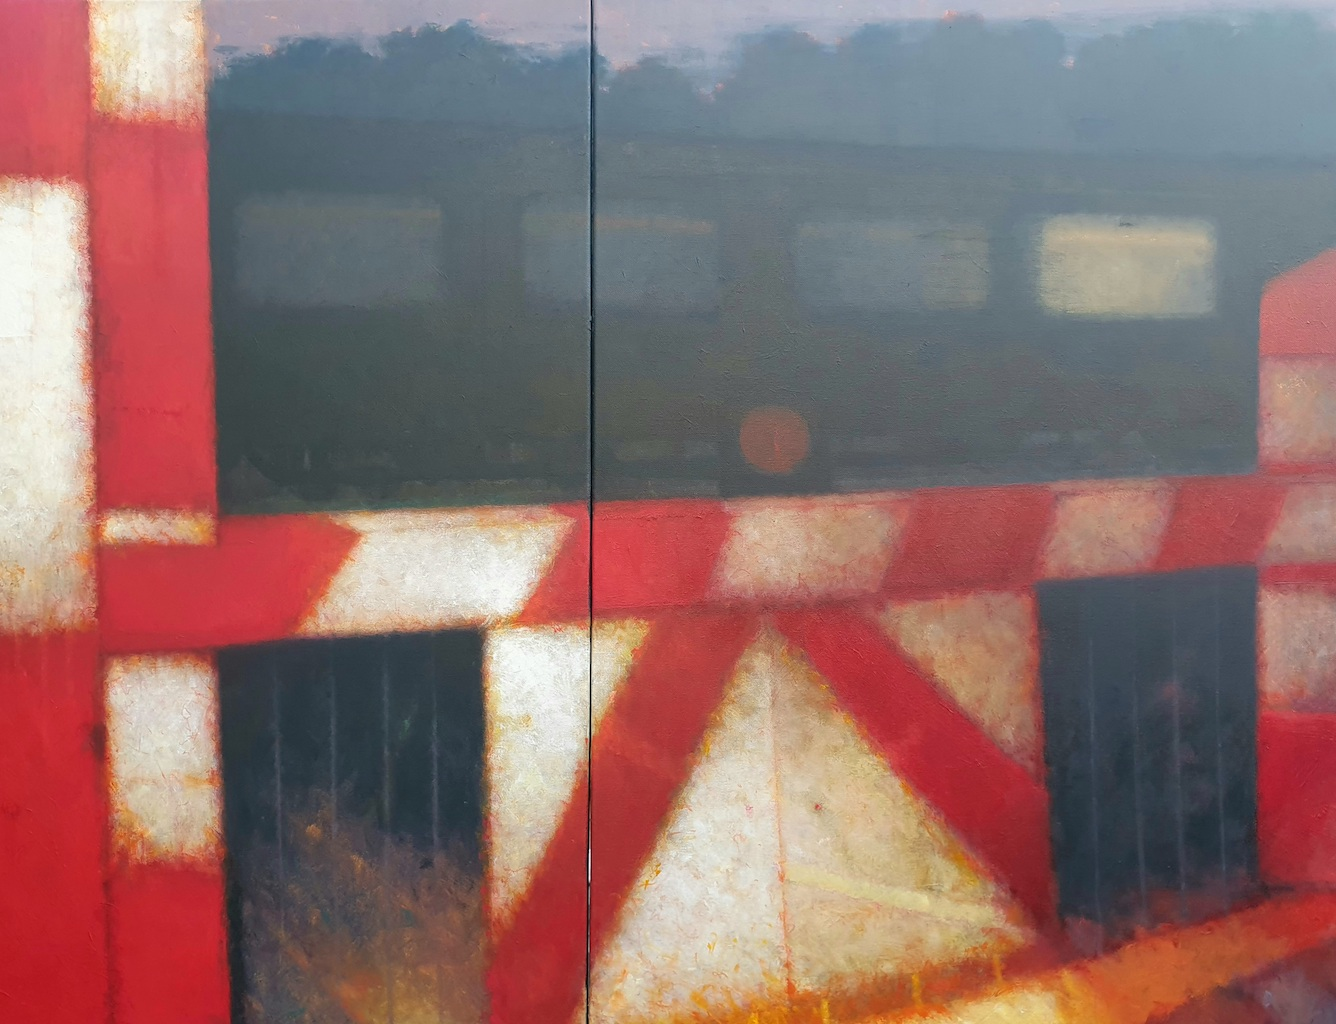 12 New Paintings | John Shinnors at GOMA Gallery of Modern Art, Waterford